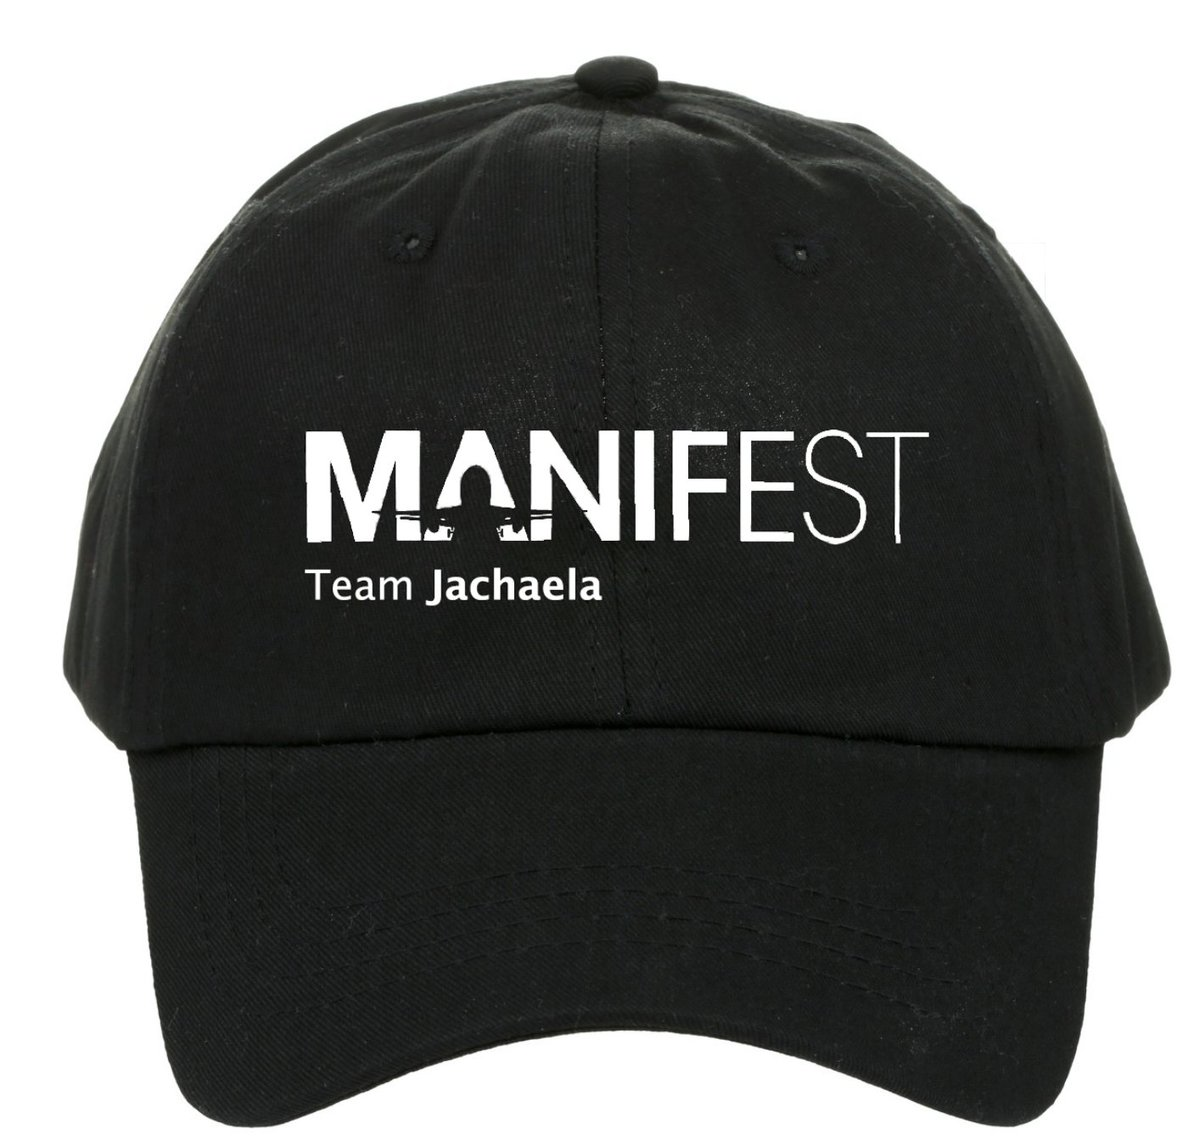 GIVEAWAY TIME 🎉 To celebrate the start of season 2 I will be giving away 3 of these caps! The winners can choose which one of these they'd like. All you have to do is FOLLOW this account and RT 😊 Winners will be randomly chosen 💕  #Manifest @NBCManifest @jeff_rake https://t.co/GjGzbJjRFk